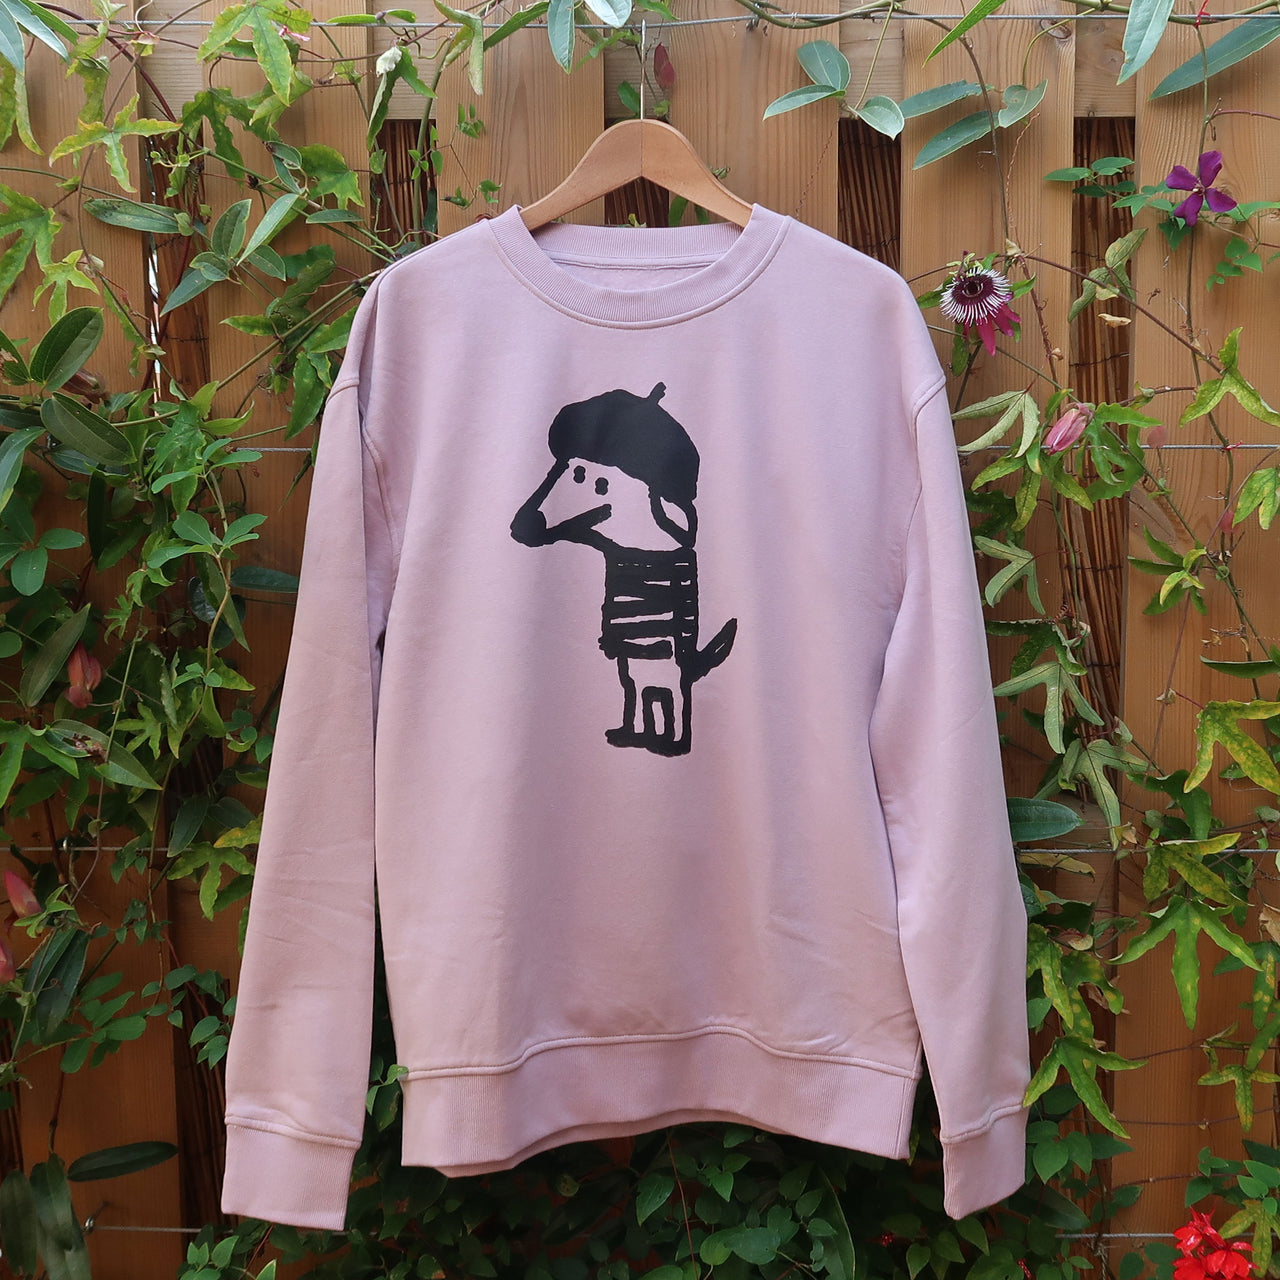 Beret Dog Sweatshirt - Men L